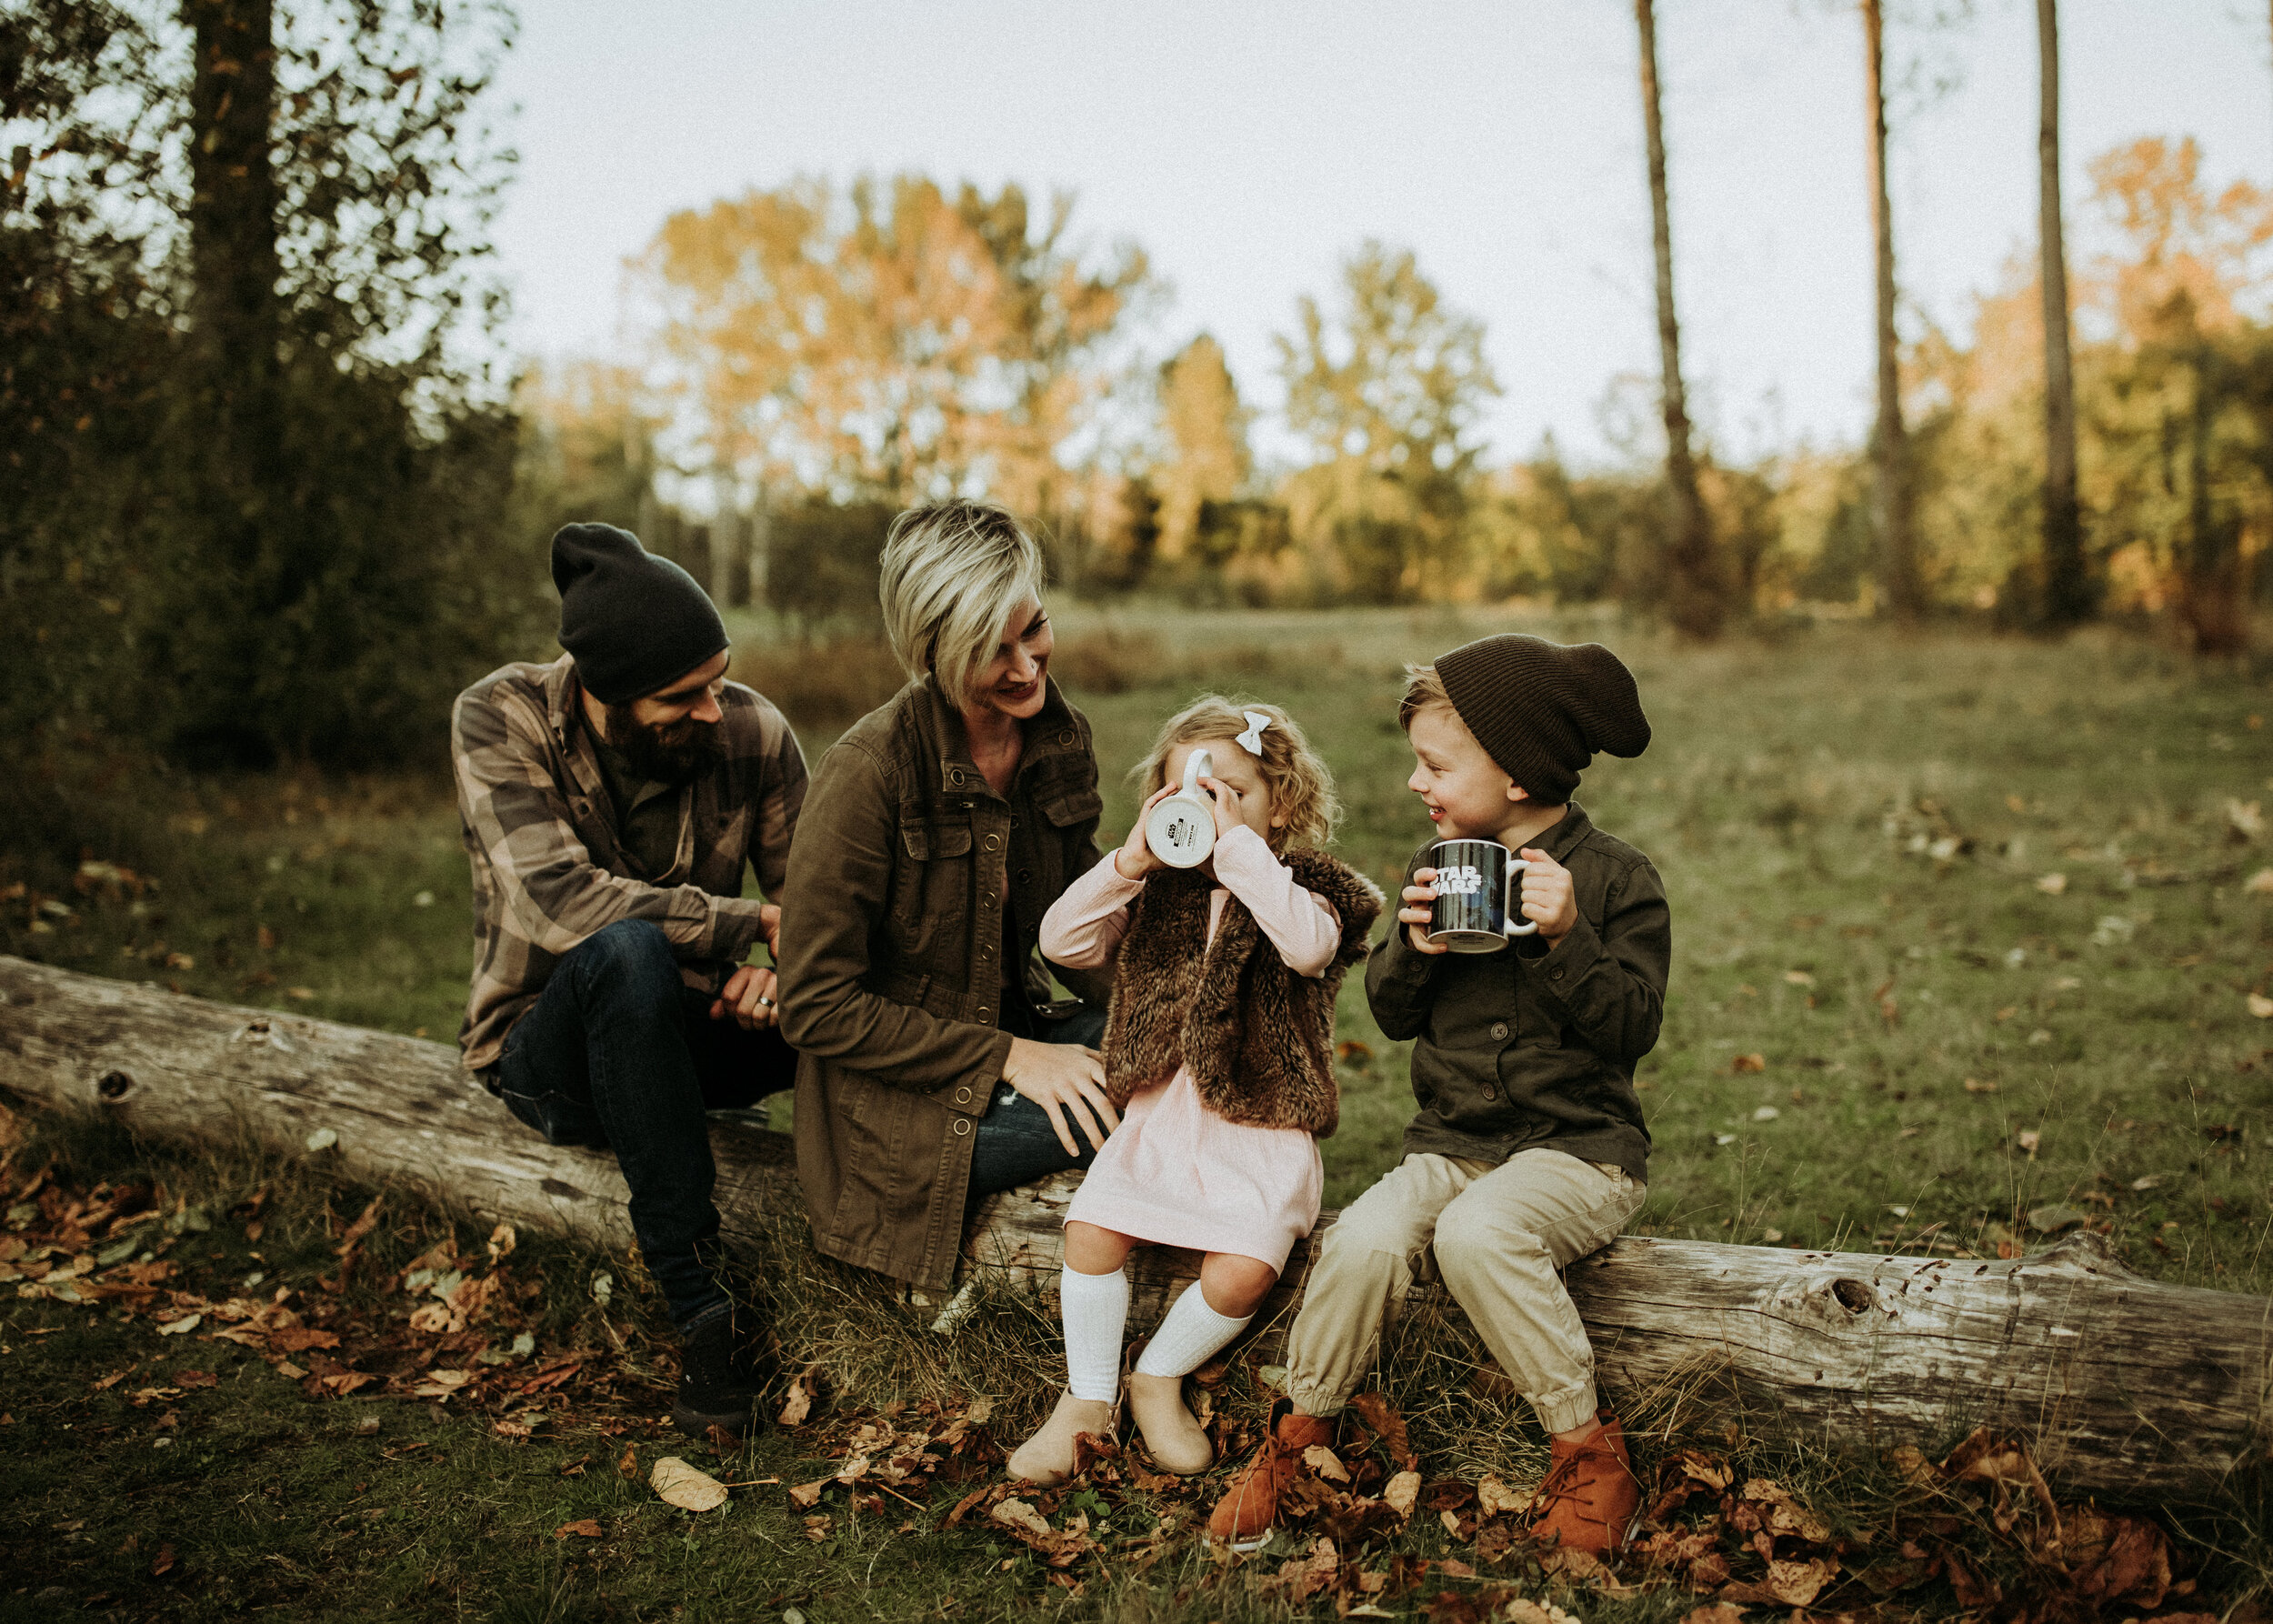 Family-Photographer-Bellingham-WA-Brianne-Bell-Photography-(Miller) (46 of 72).jpg